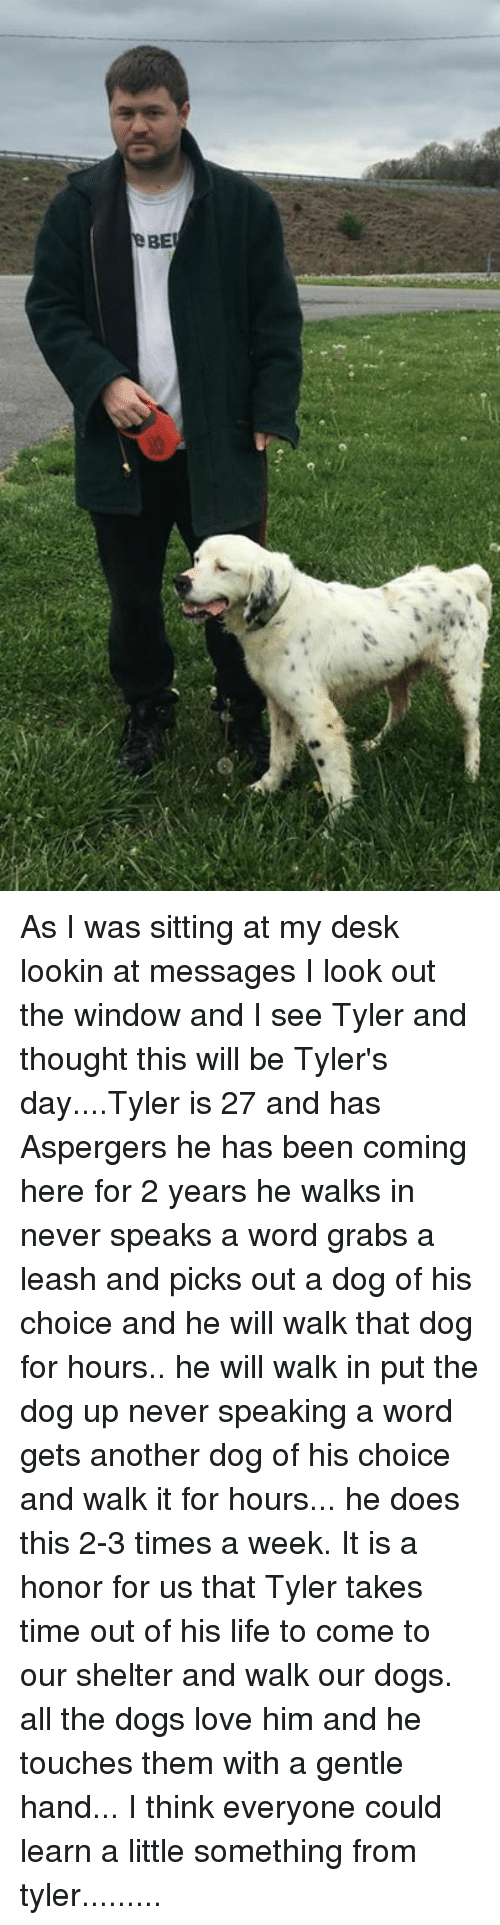 Dogs, Life, and Love: As I was sitting at my desk lookin at messages I look out the window and I see Tyler and thought this will be Tyler's day....Tyler  is 27 and has Aspergers  he has been coming here for 2 years he walks in never speaks a word grabs a leash and picks out a dog of his choice and he will walk that dog for hours.. he will walk in  put the dog up never speaking a word gets another dog of his choice and walk it for hours... he does this 2-3 times a week. It is a honor for us that  Tyler  takes  time out of his life to come to our shelter and walk our dogs. all the dogs love him and he touches them with a gentle hand... I think everyone could learn a little something from tyler.........